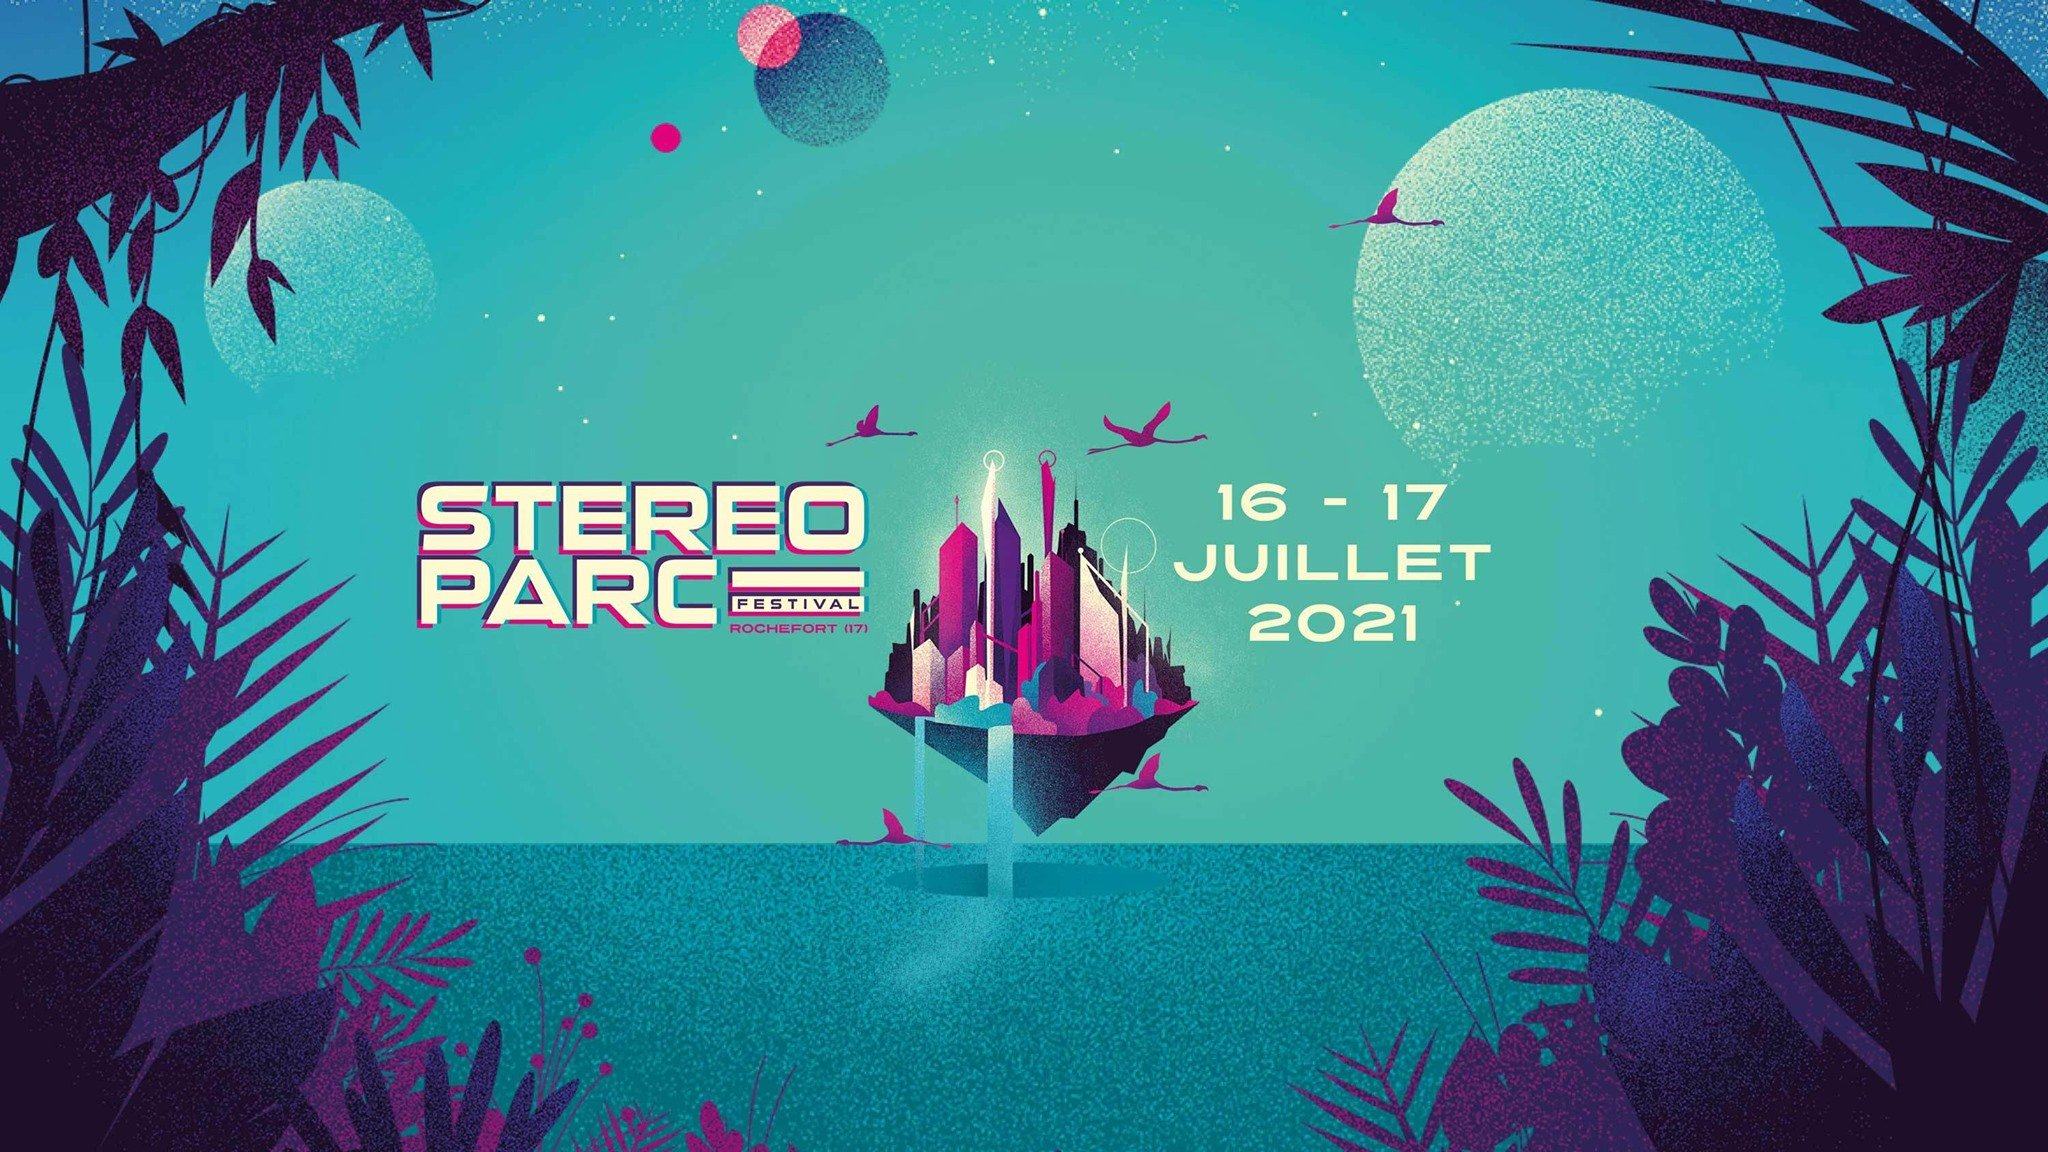 Festival Stereoparc 2021